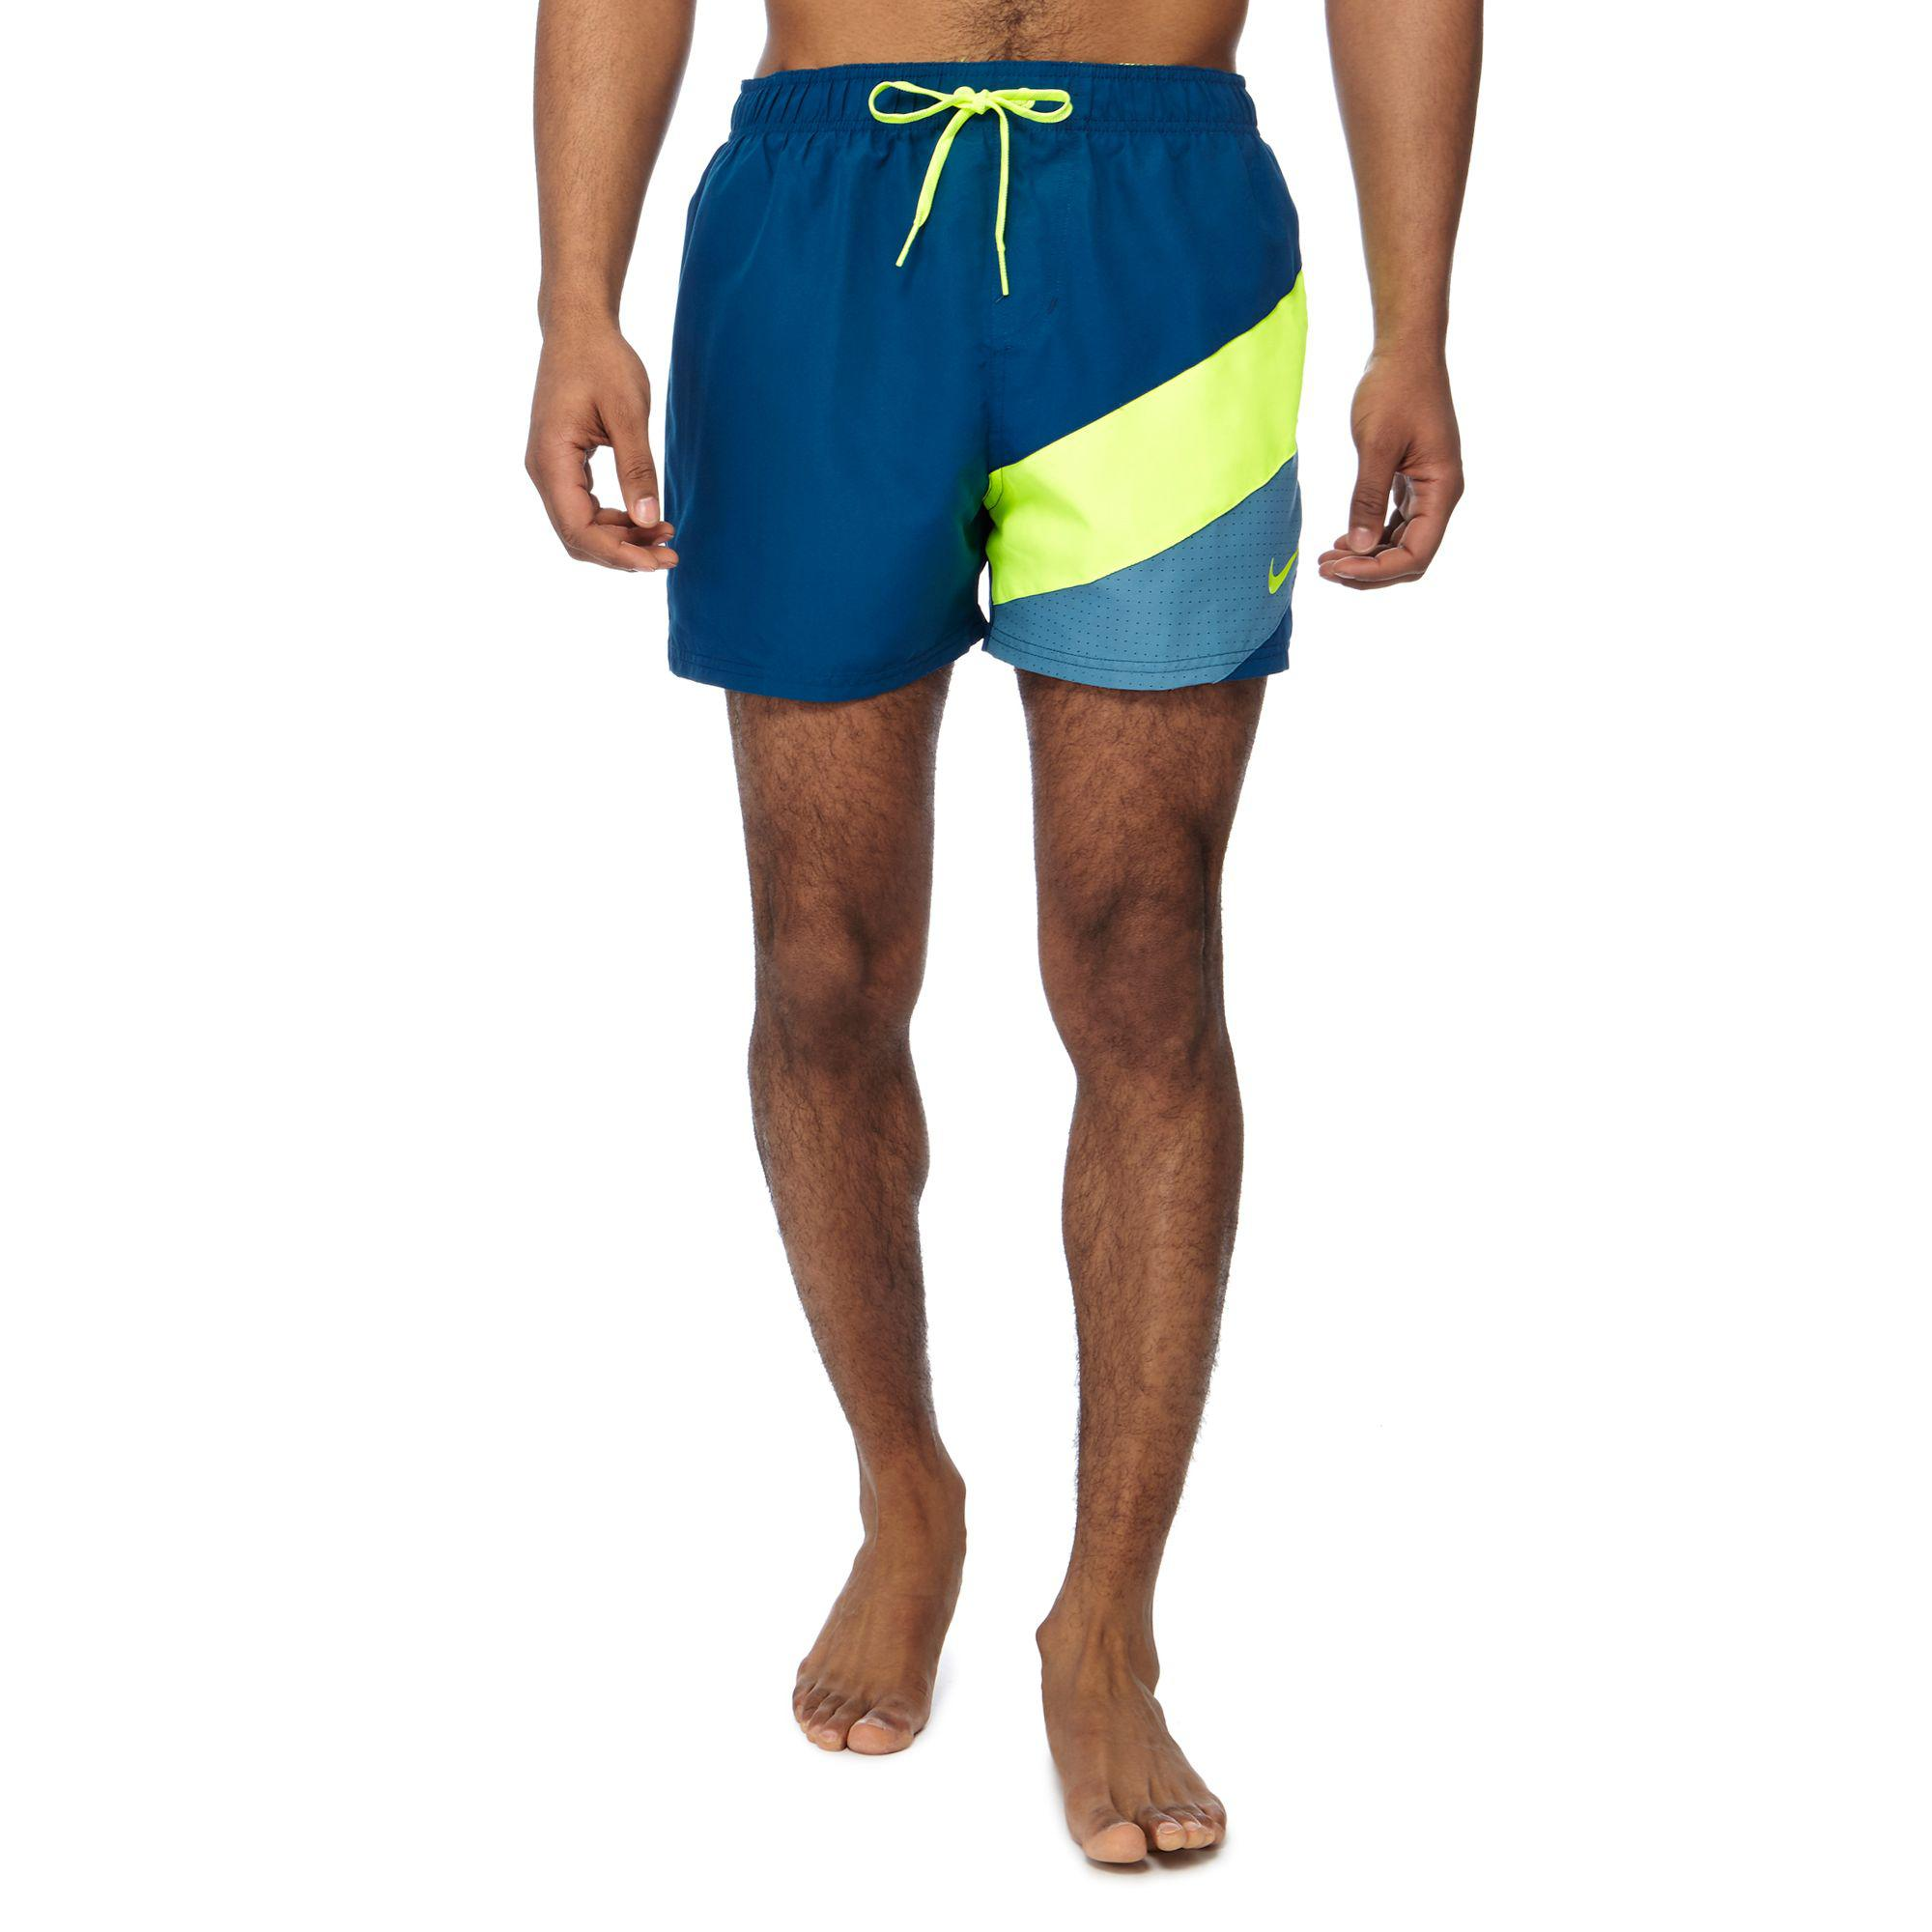 036c0f043a Nike Dark Turquoise Colour Block Swim Shorts in Blue for Men - Lyst